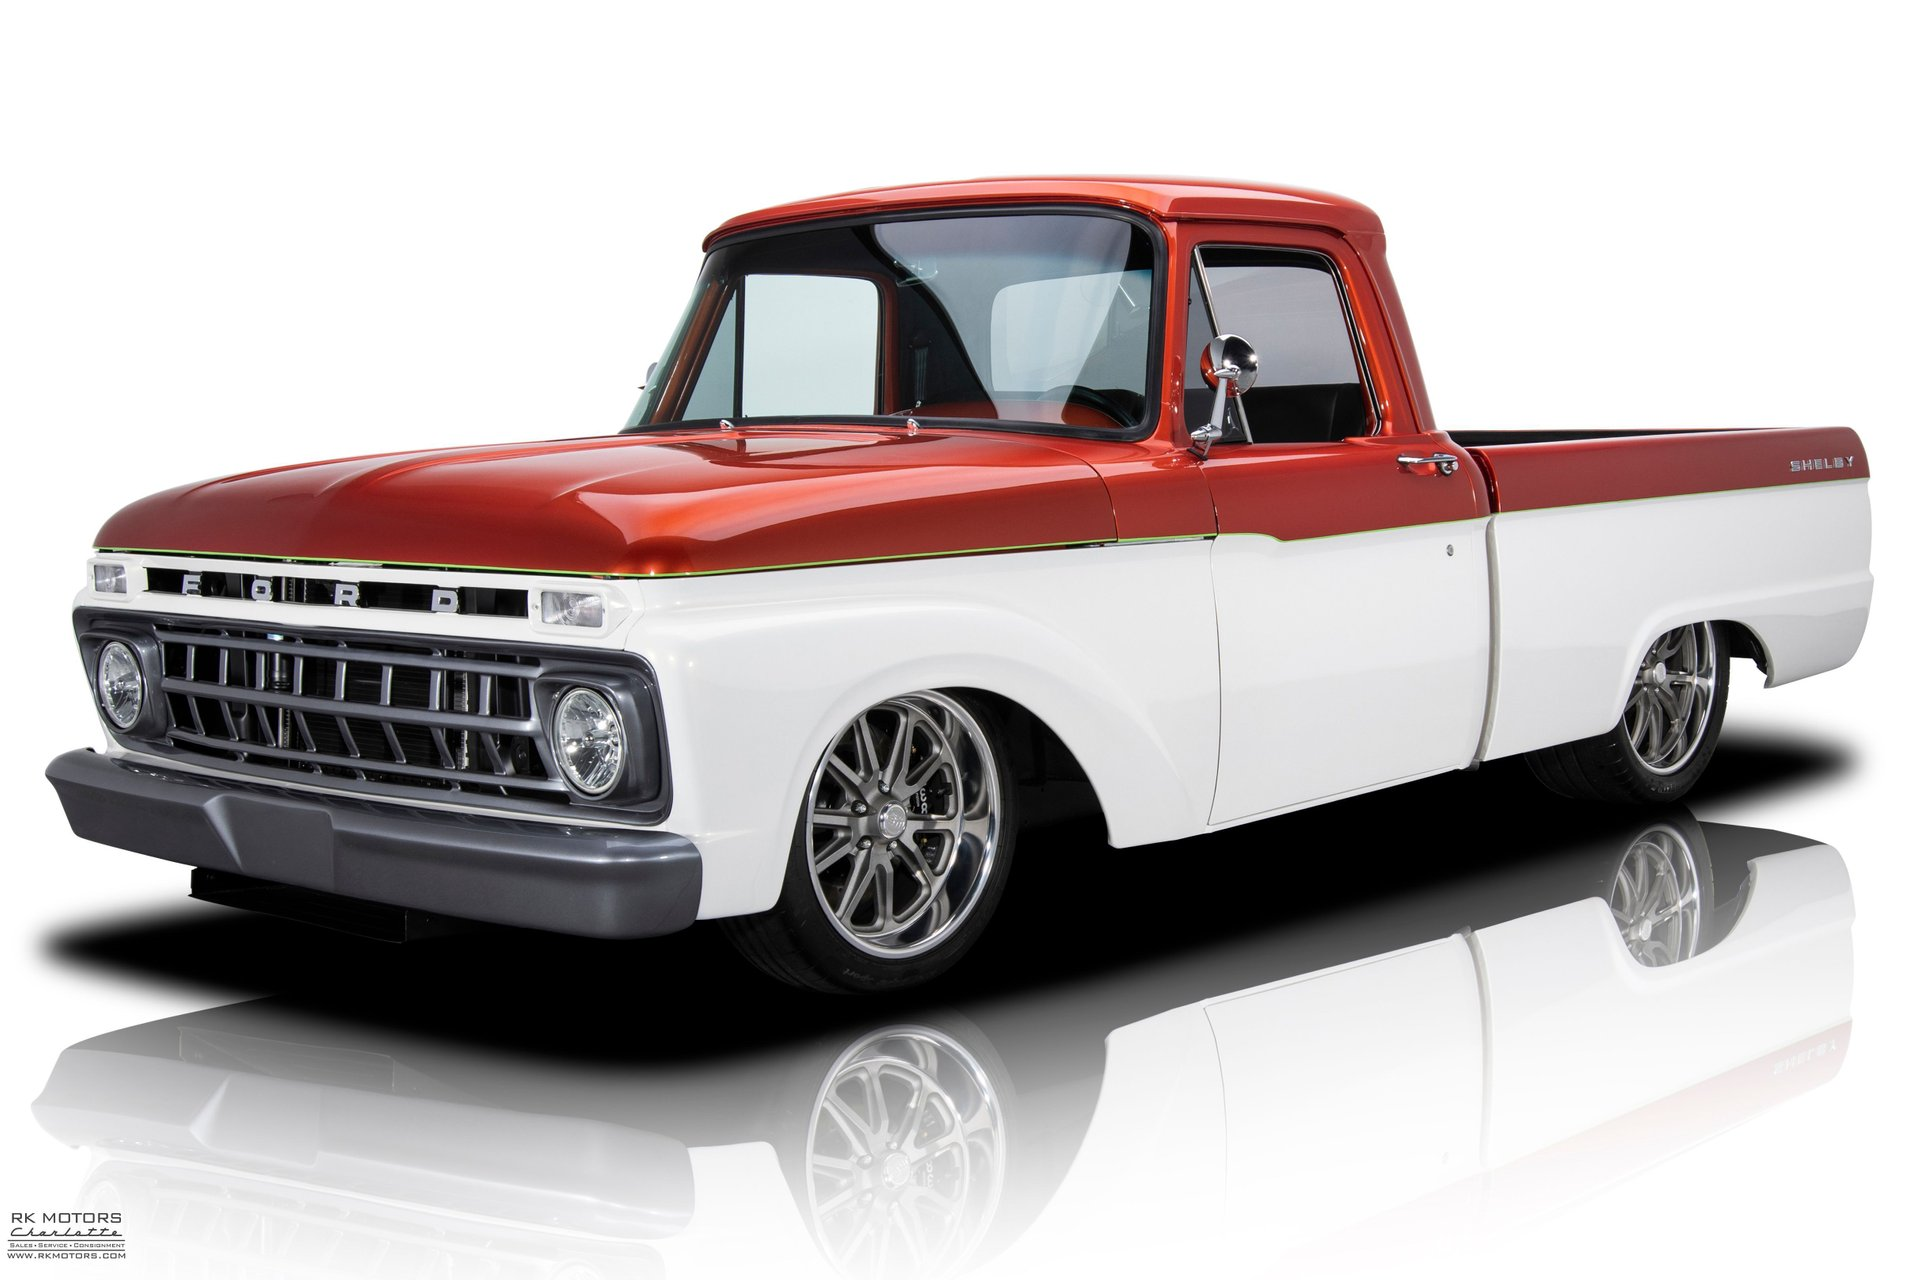 136637 1965 Ford F100 Rk Motors Classic Cars And Muscle Cars For Sale